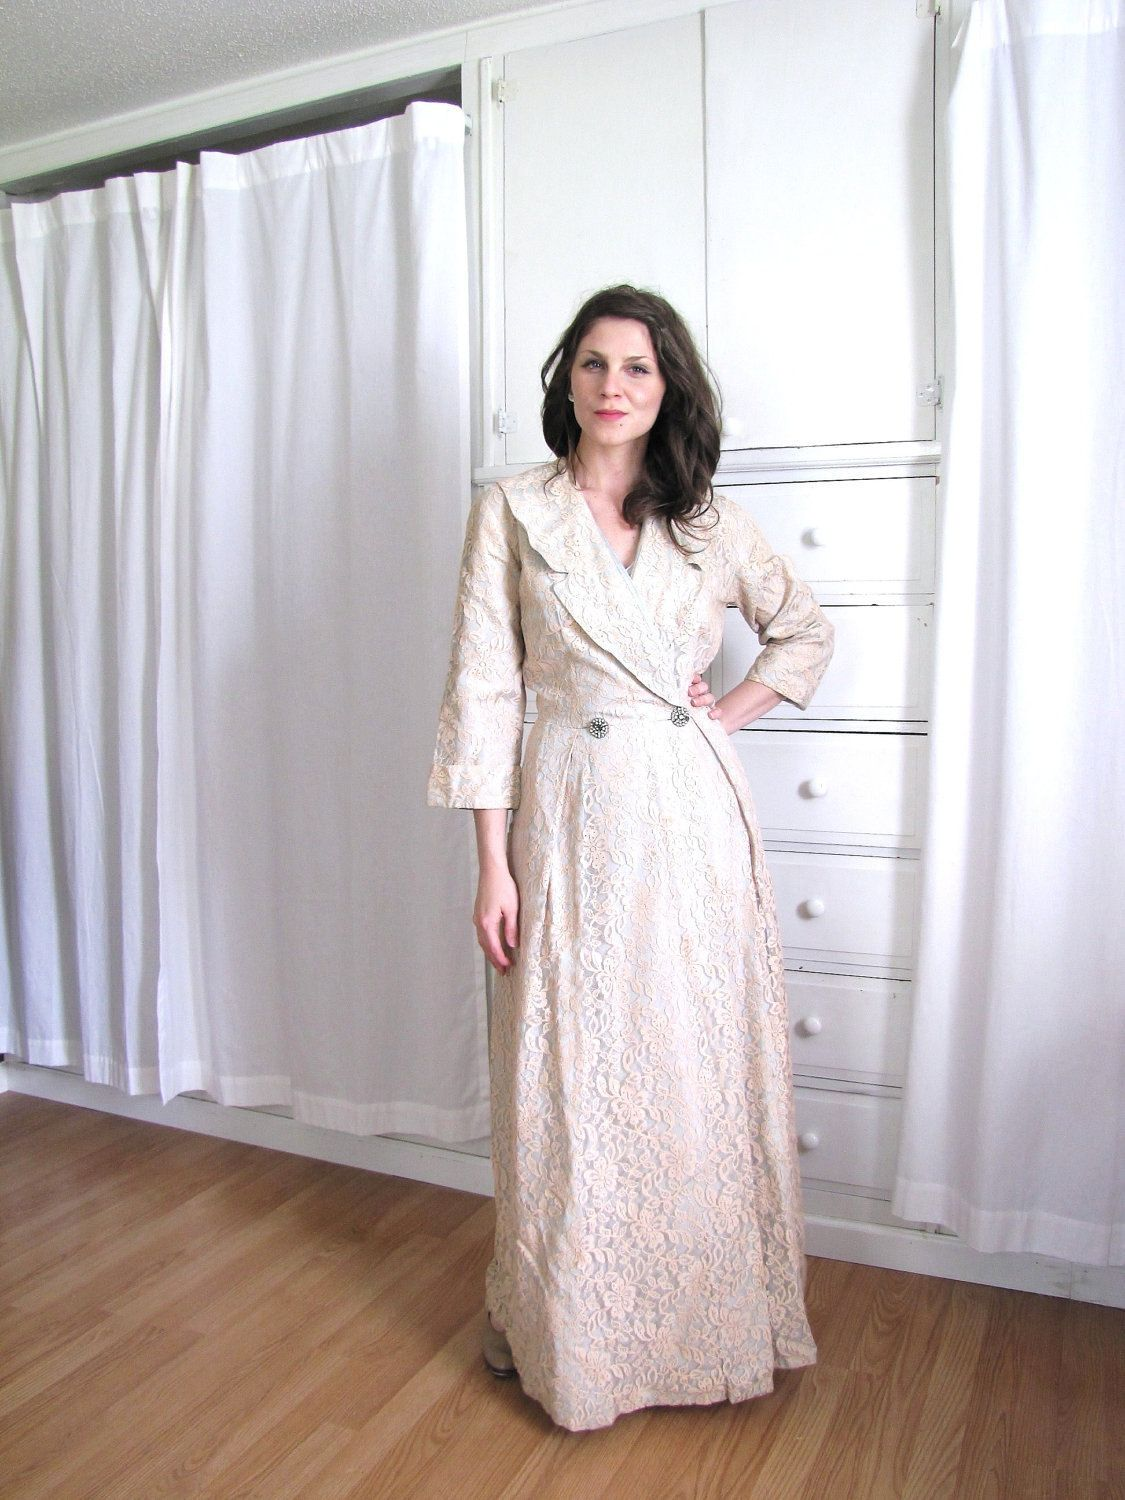 1940 S Dressing Gown House Coat 40s Dressing Gown Gowns Dresses Pretty Robes Gowns